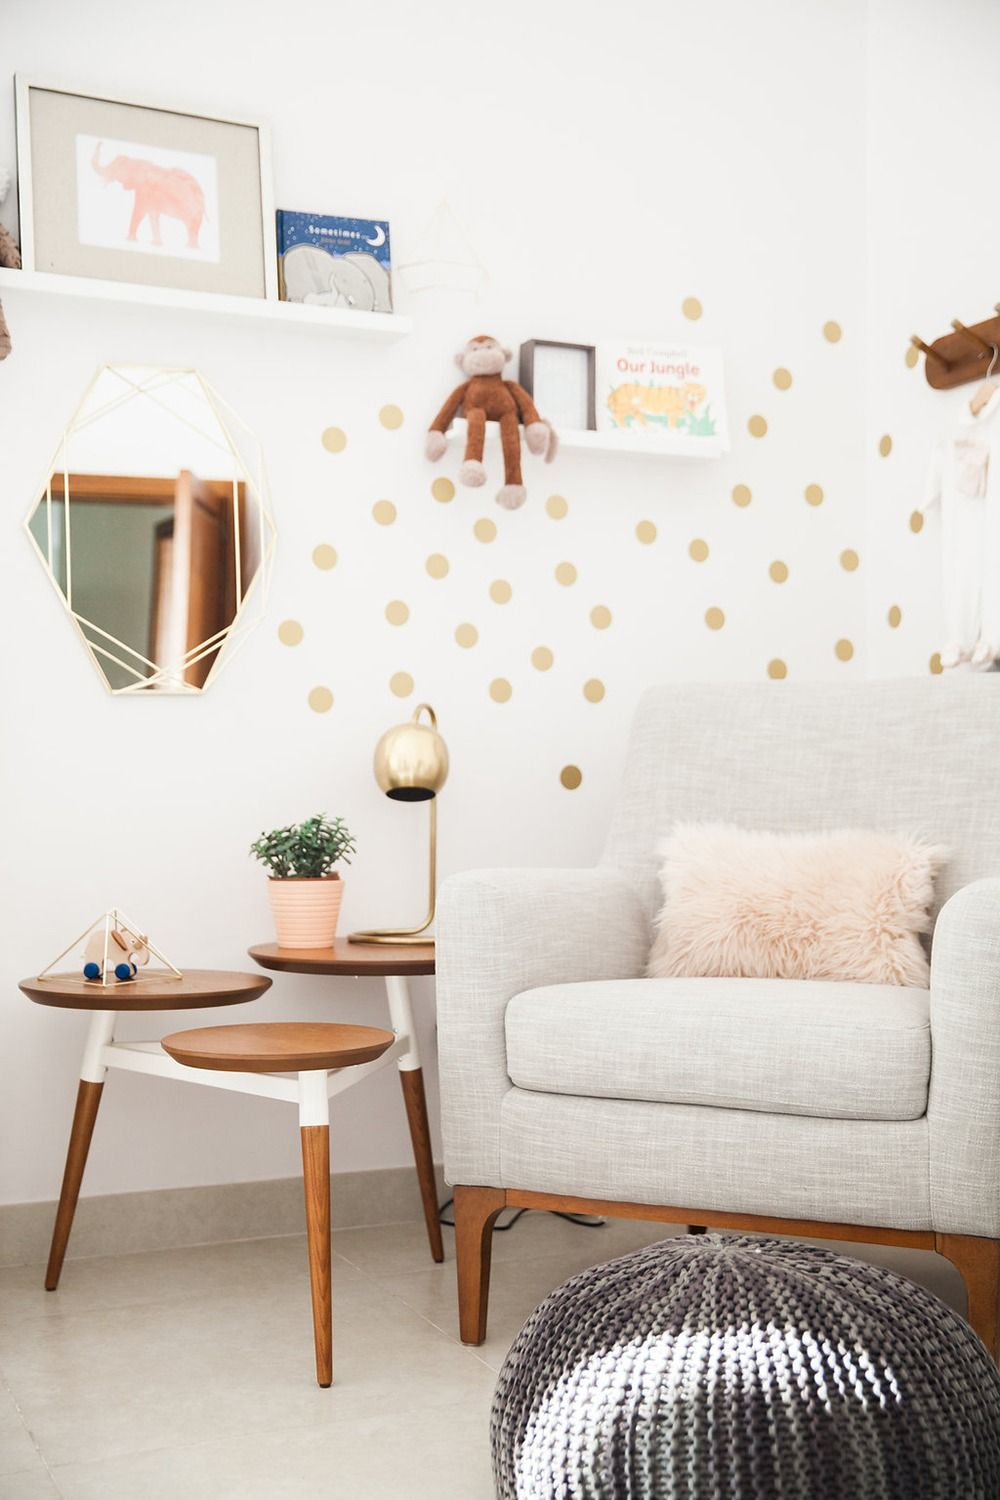 White Walls Serve As The Perfect Backdrop For This Modern Nursery With Creative Gold Accents And Furnitu Timeless Furniture Furniture Living Room Inspiration